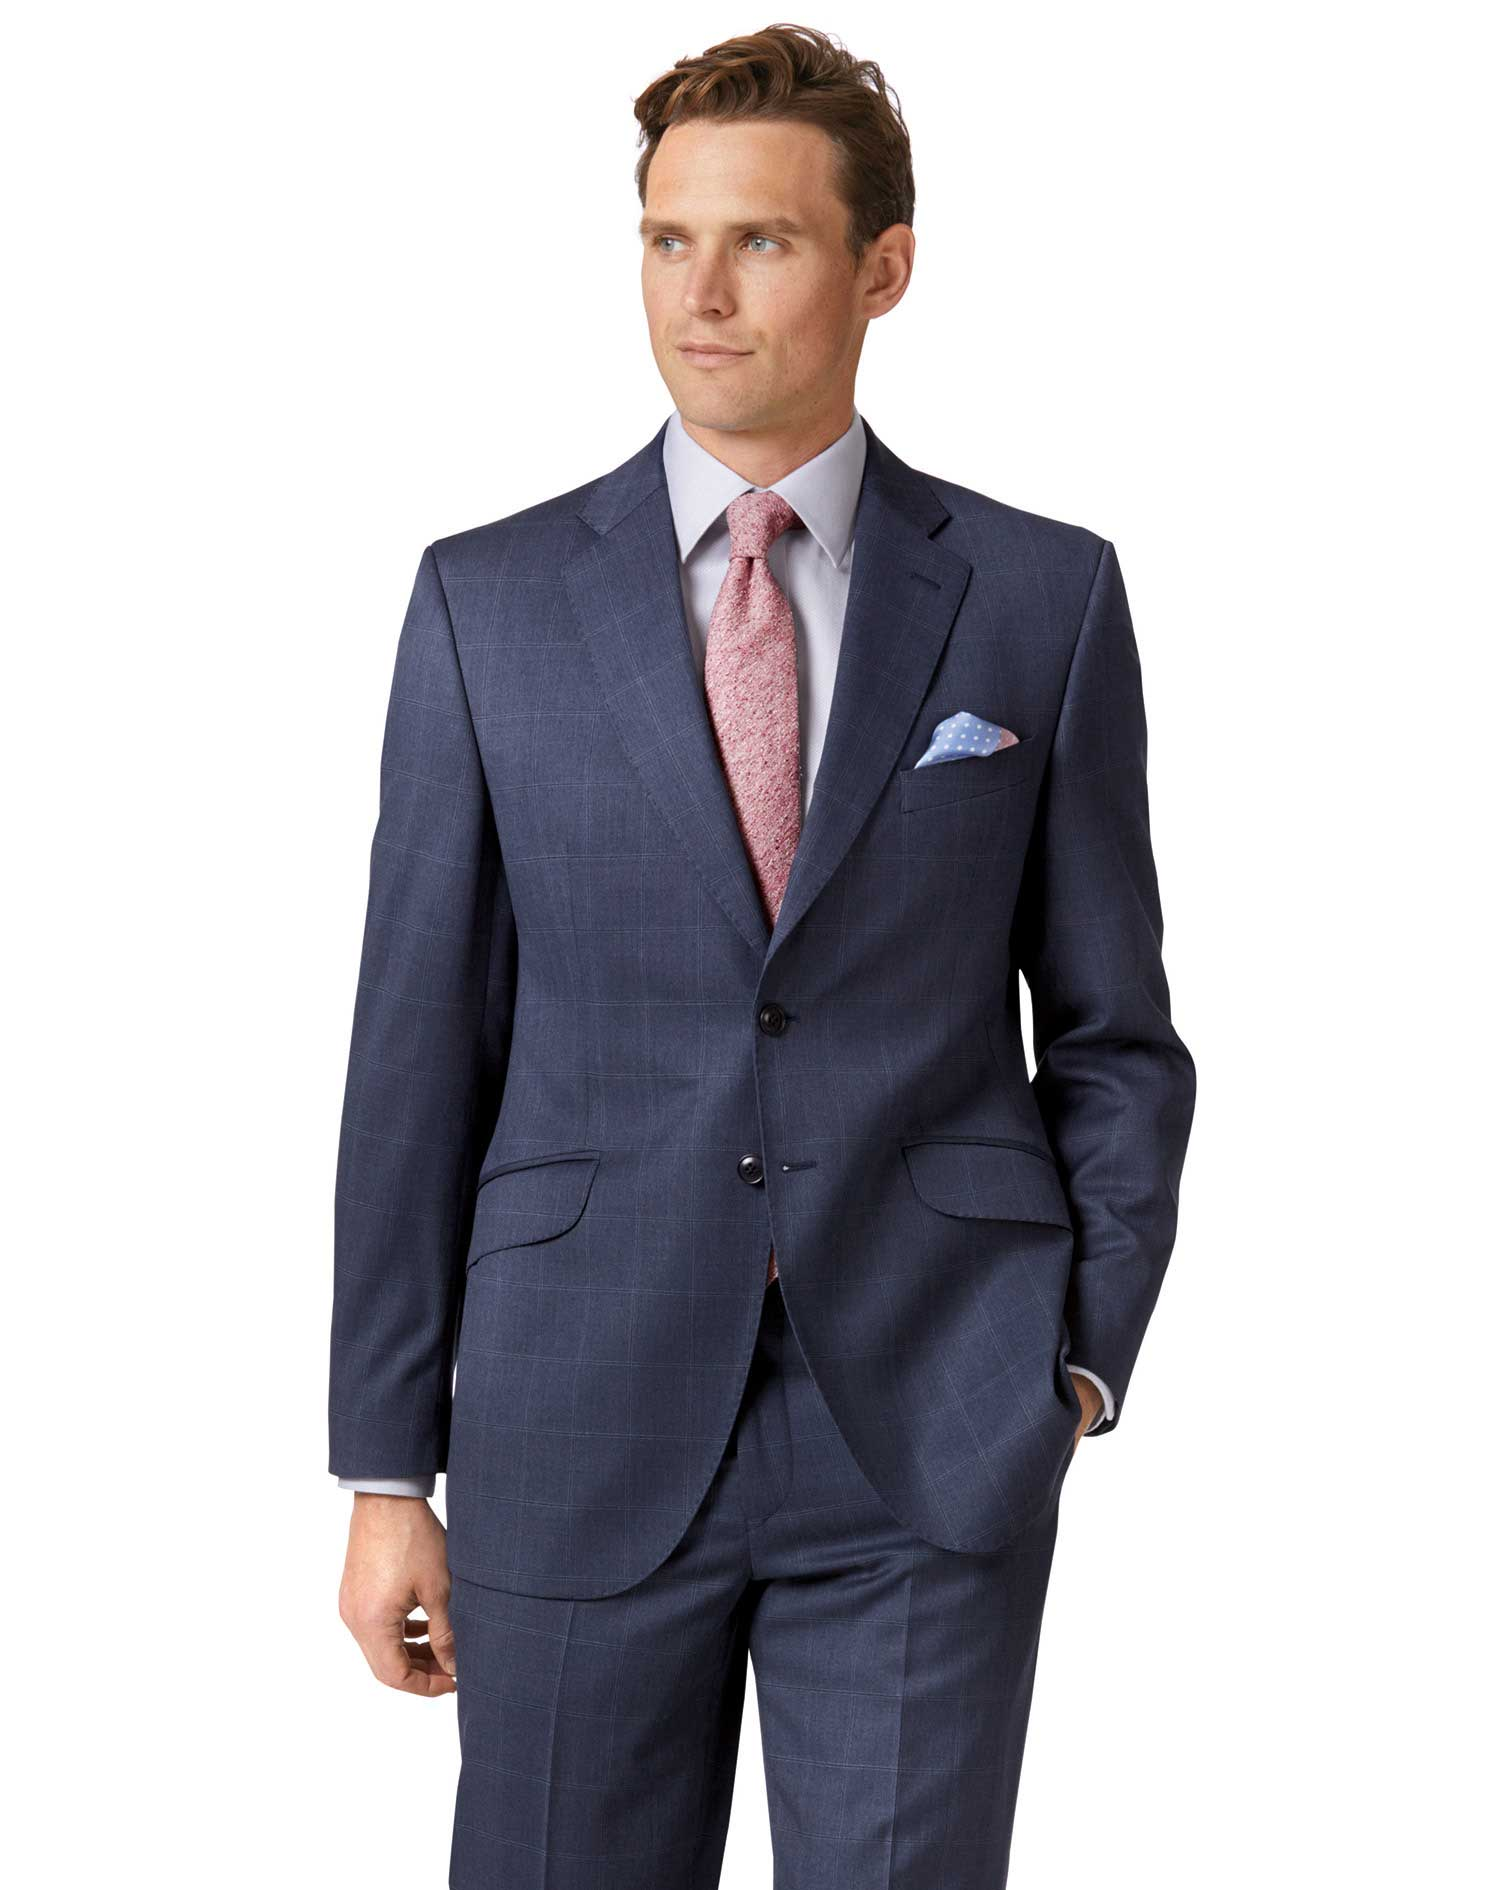 Image of Charles Tyrwhitt Airforce Blue Classic Fit Italian Suit Wool Jacket Size 38 Regular by Charles Tyrwhitt